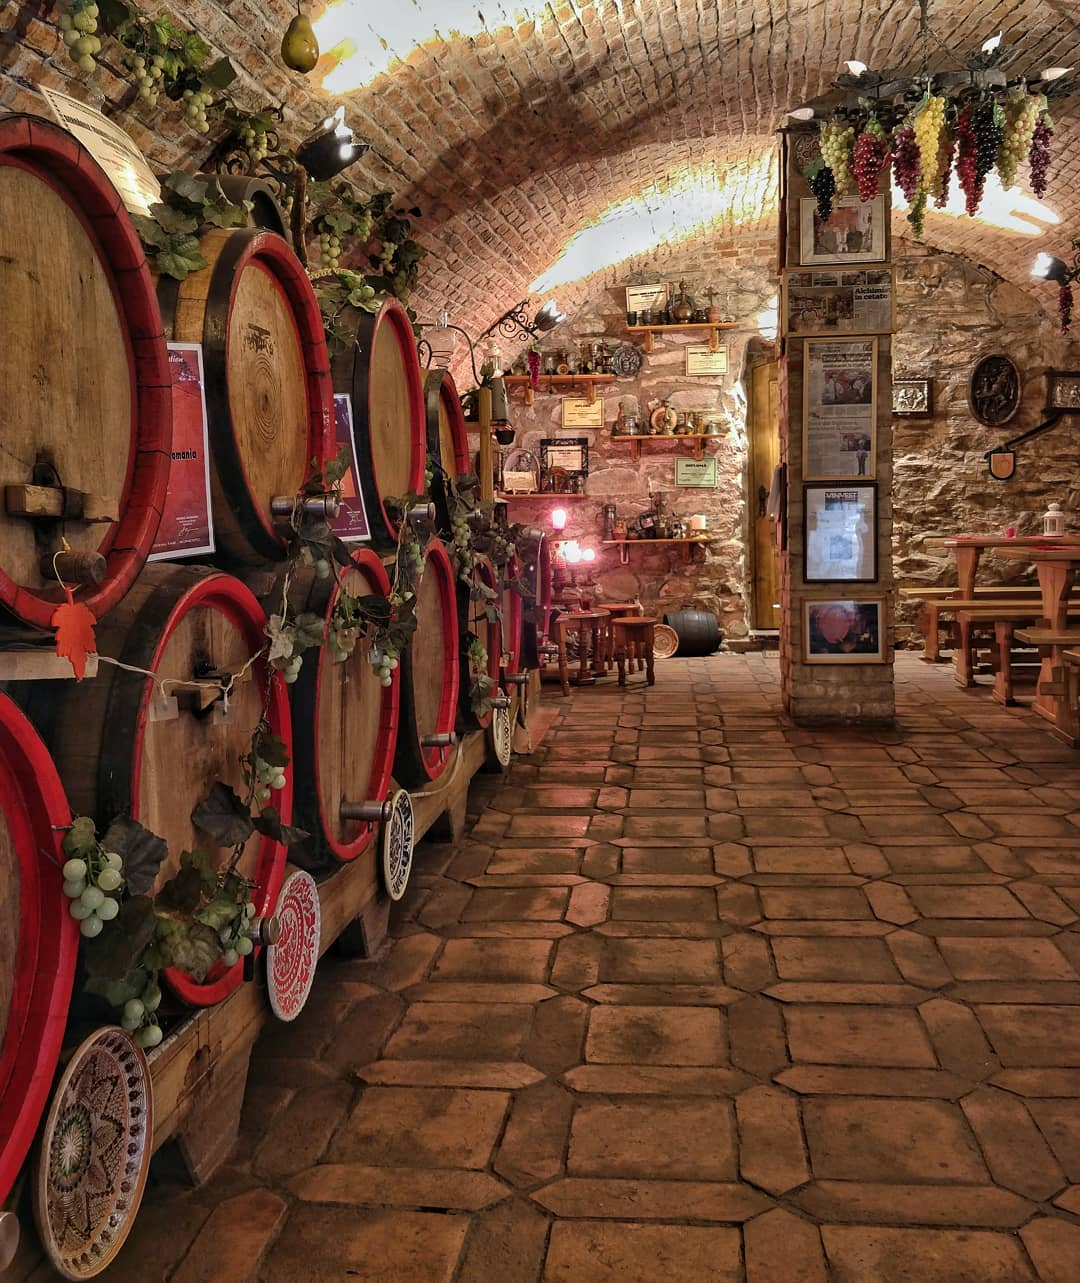 Things to do in Sighisoara - Teo's Cellar